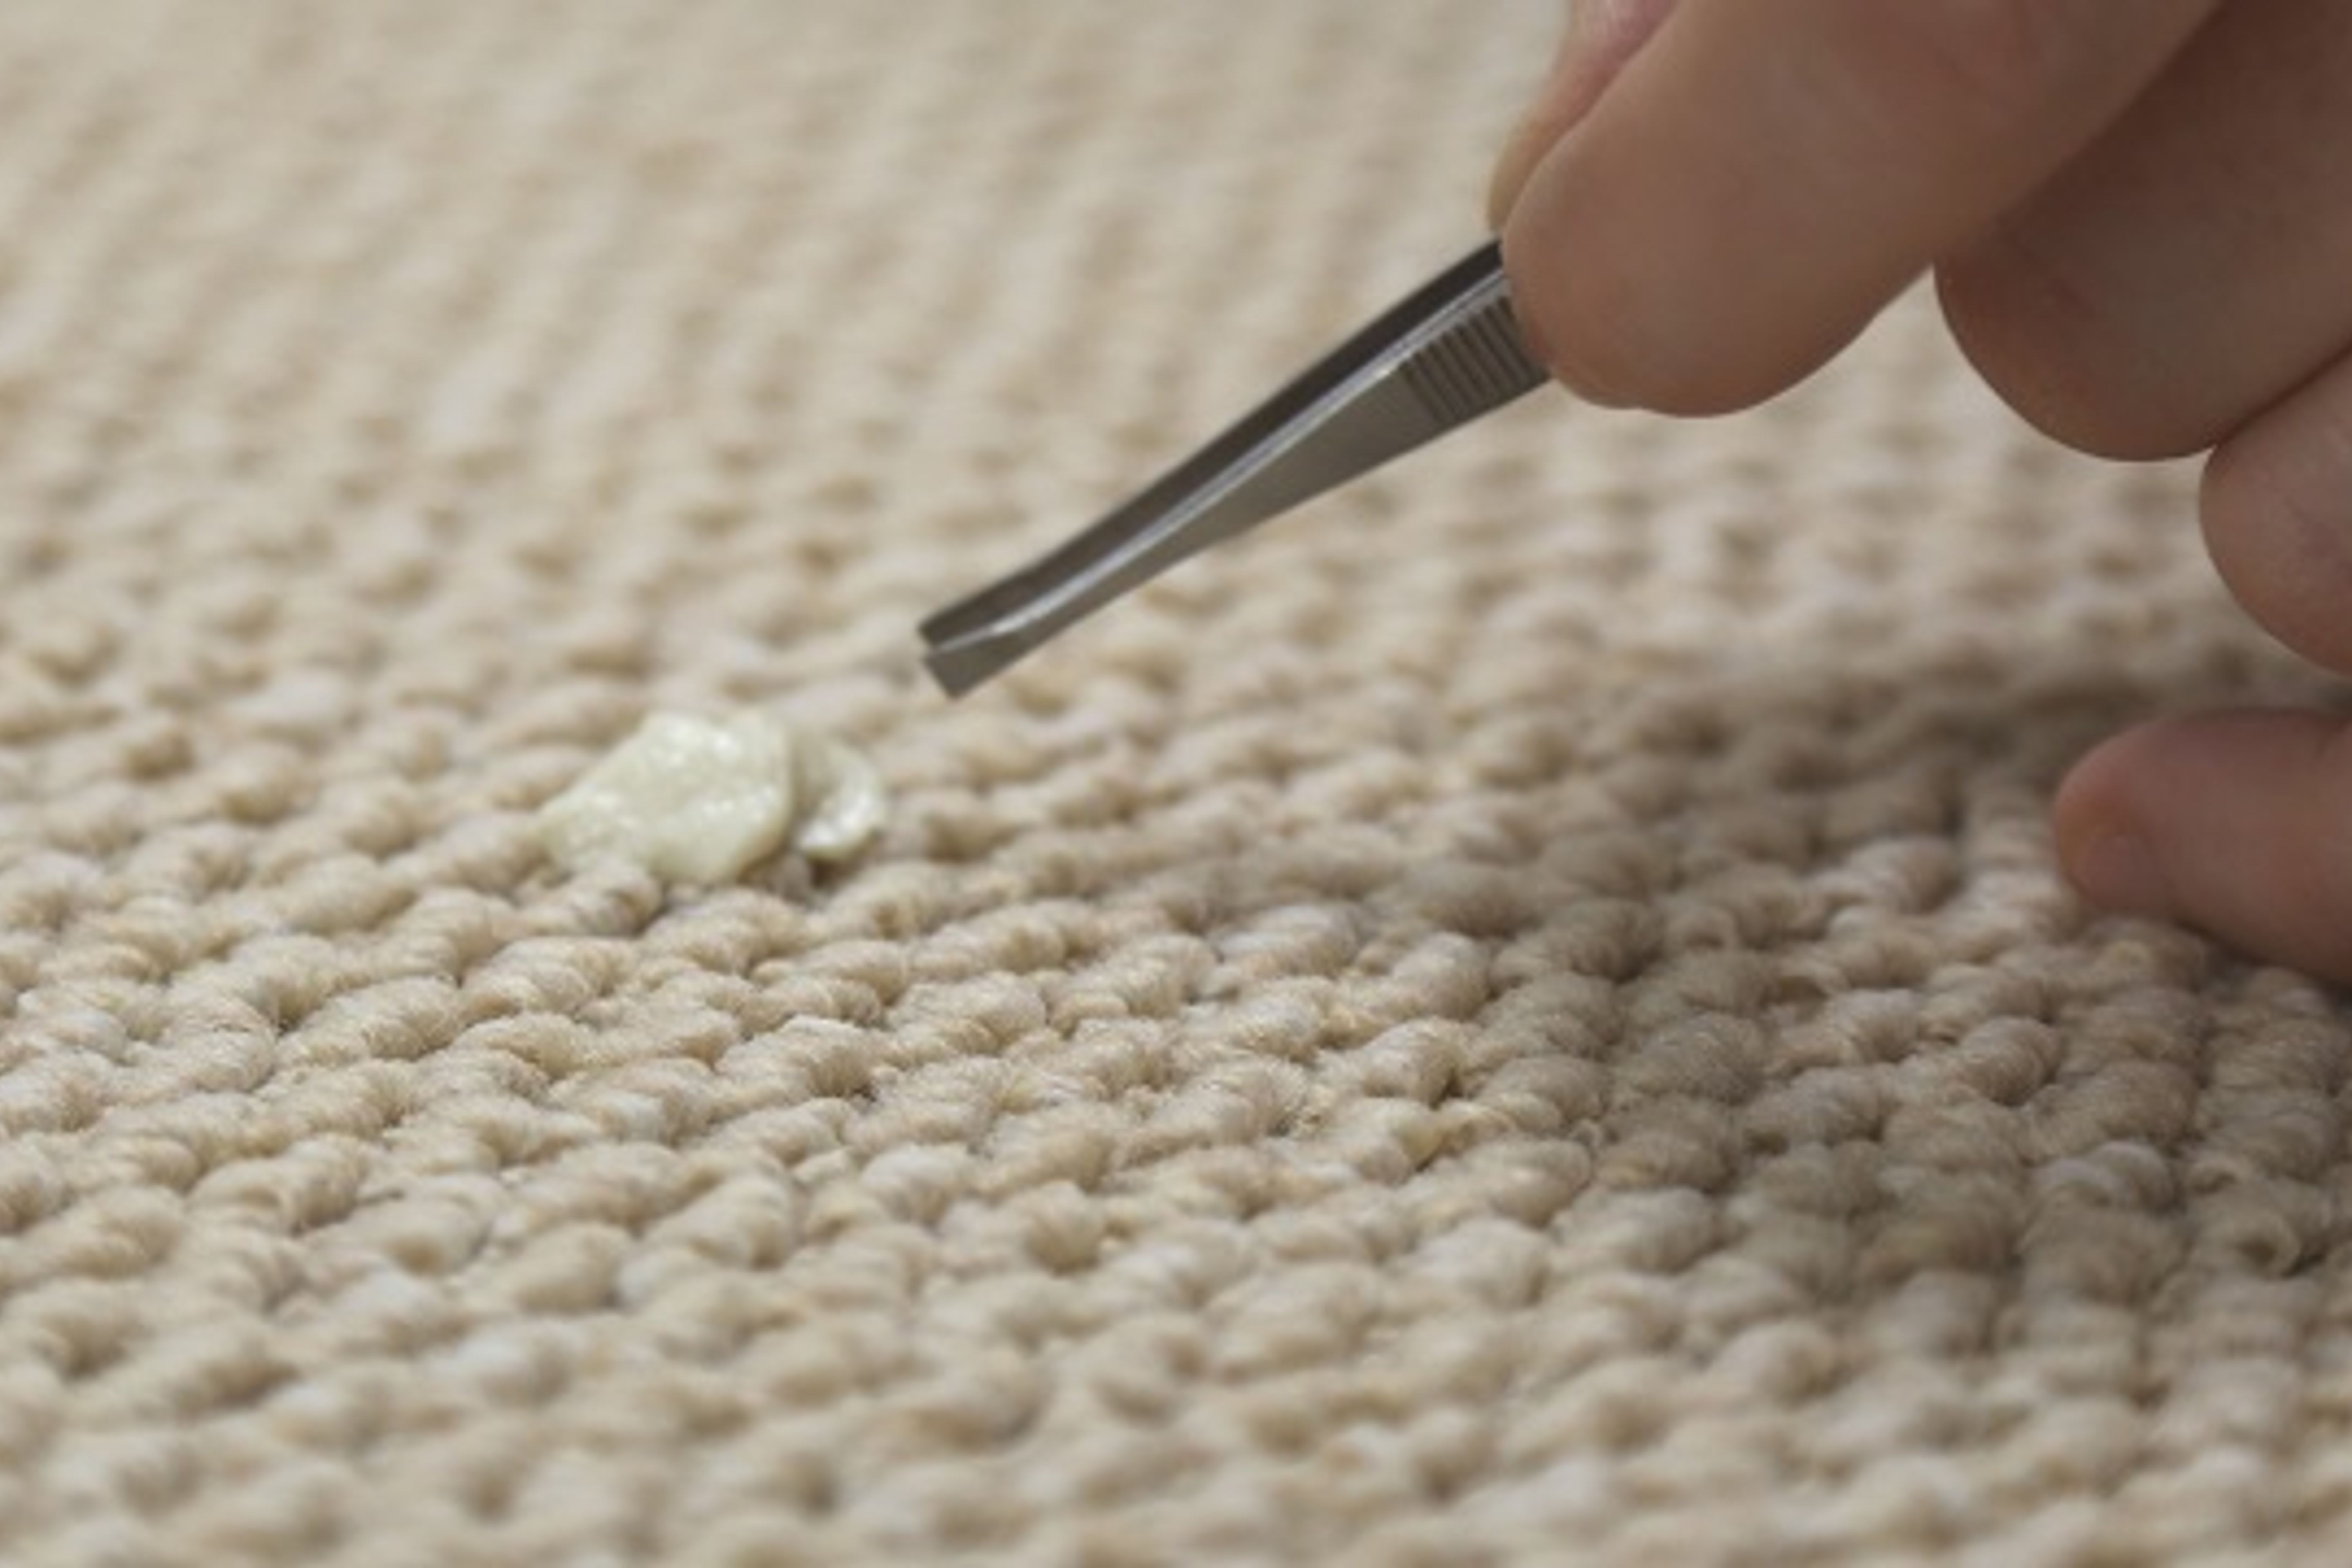 carpet-guides-and-advice-removing-chewing-gum-with-tweezers -